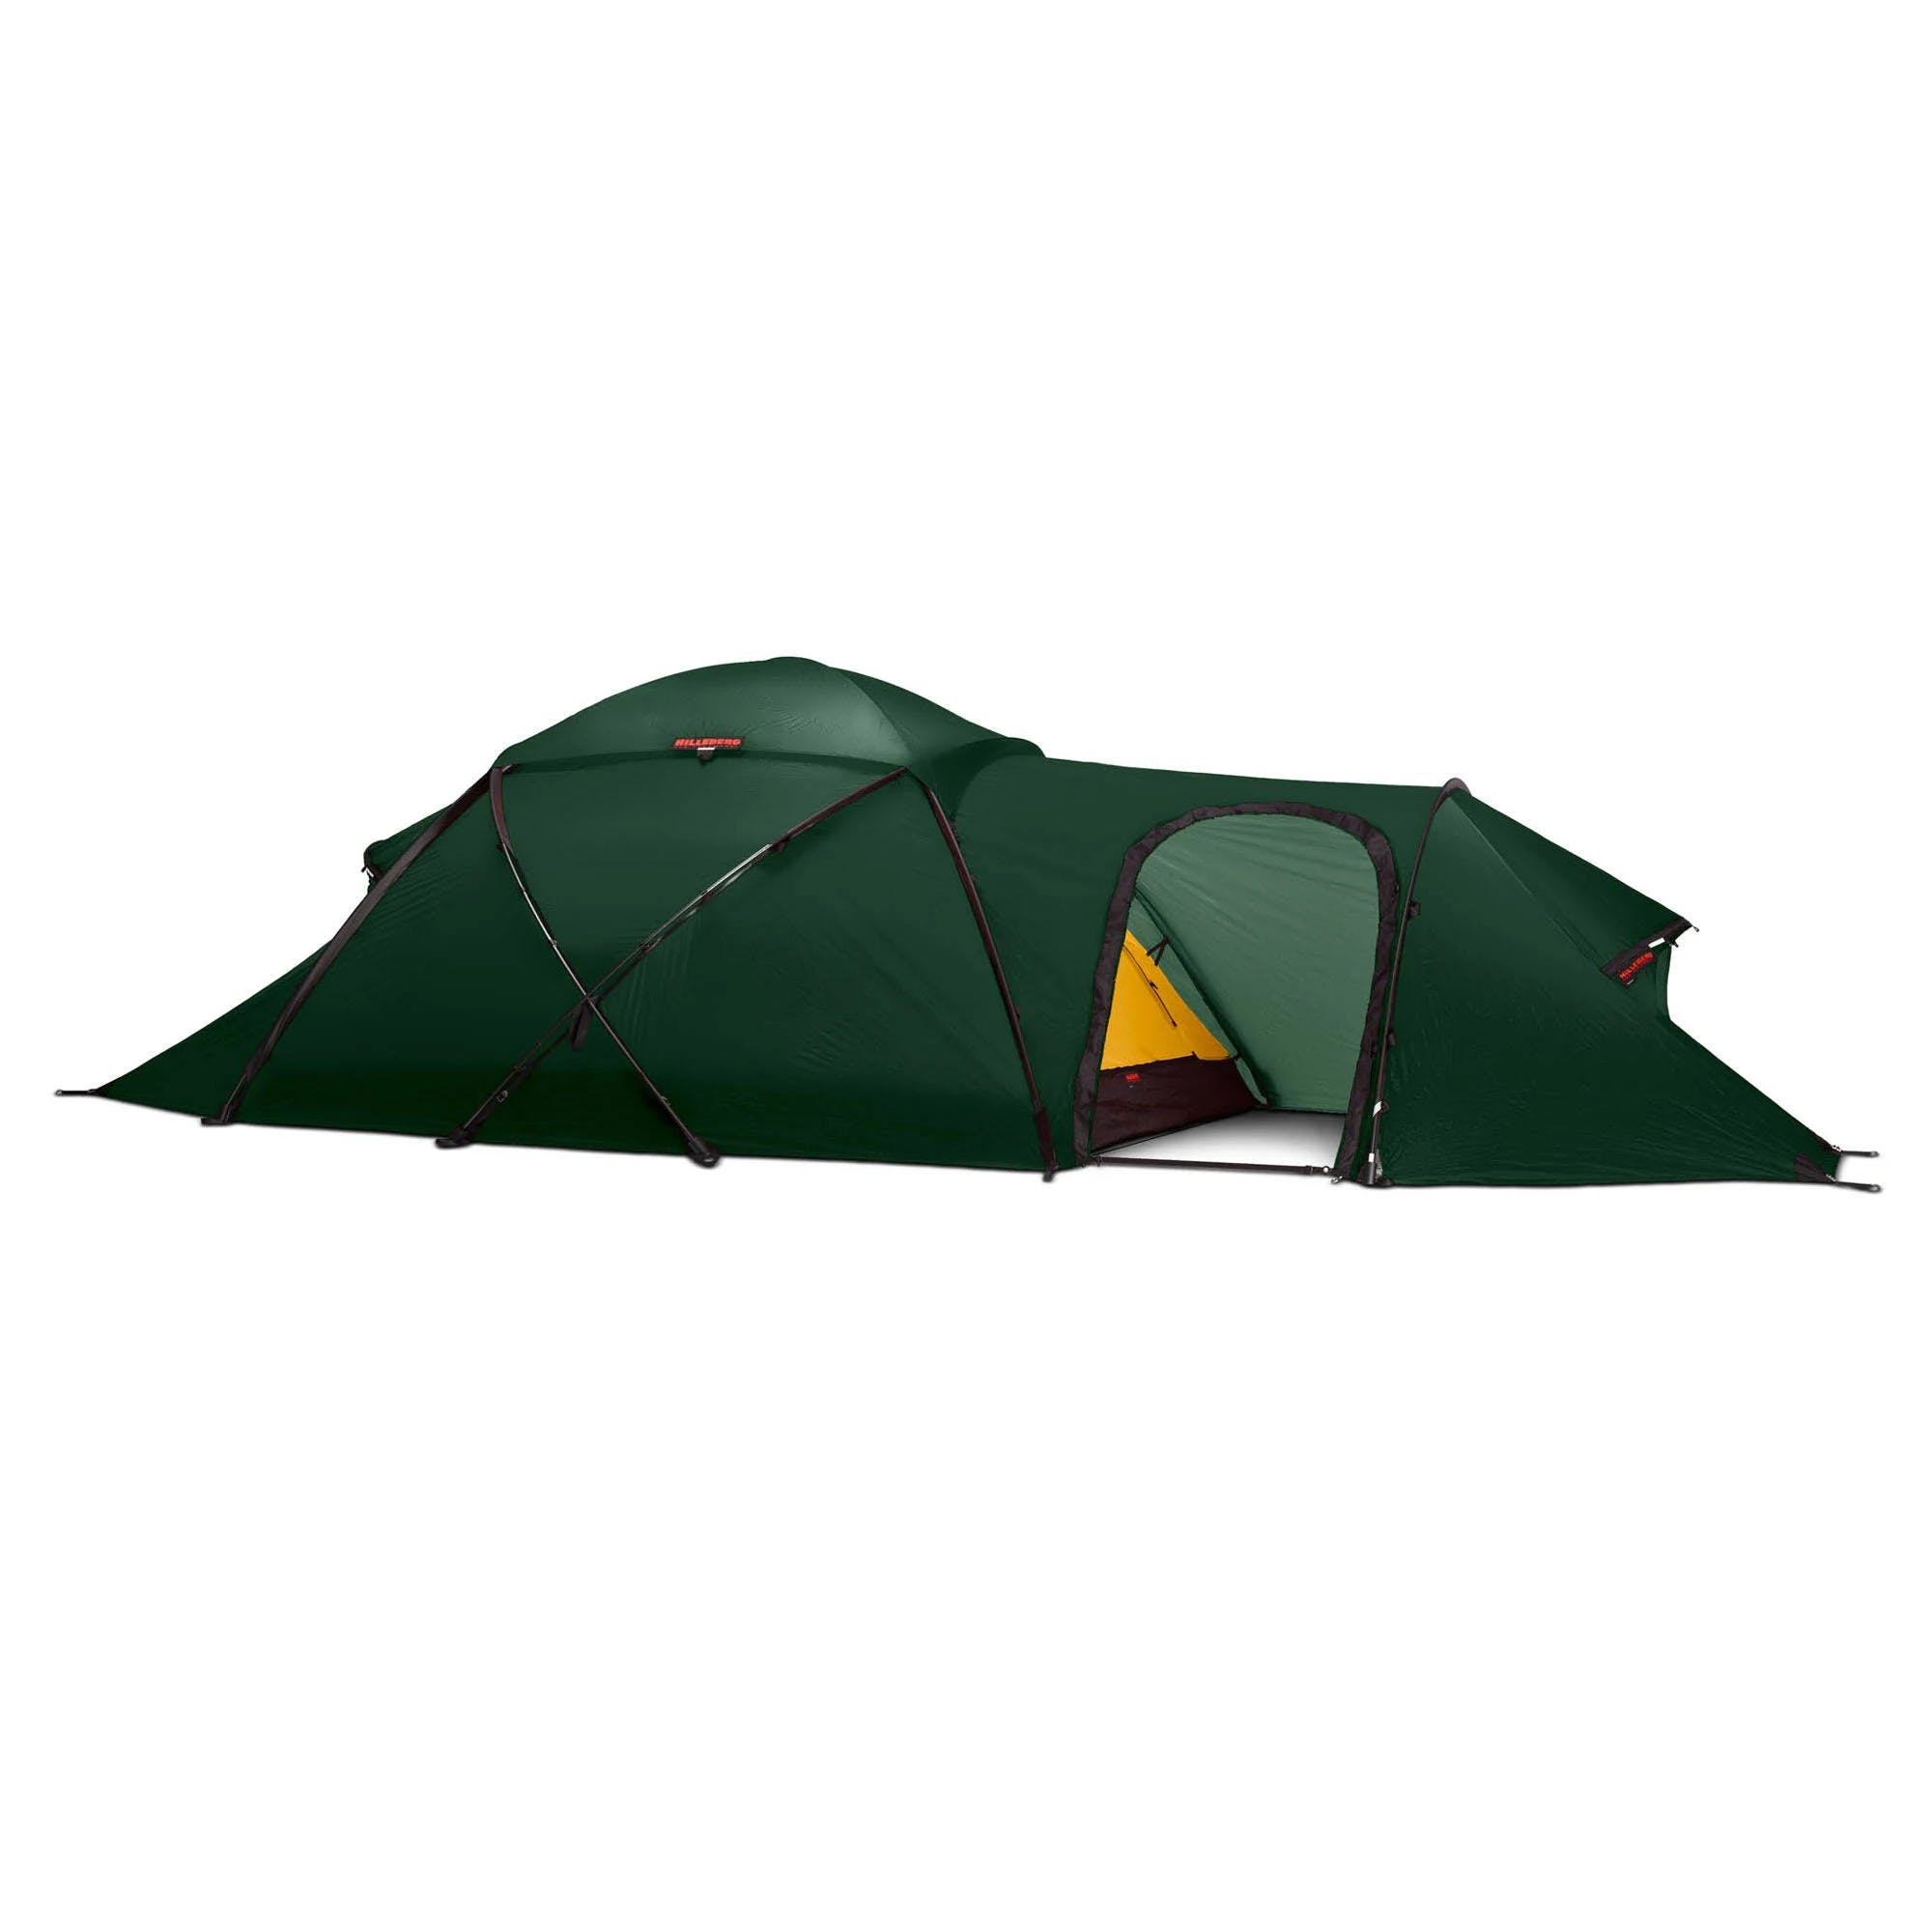 Hilleberg Saitaris 4 Person Tent, Green